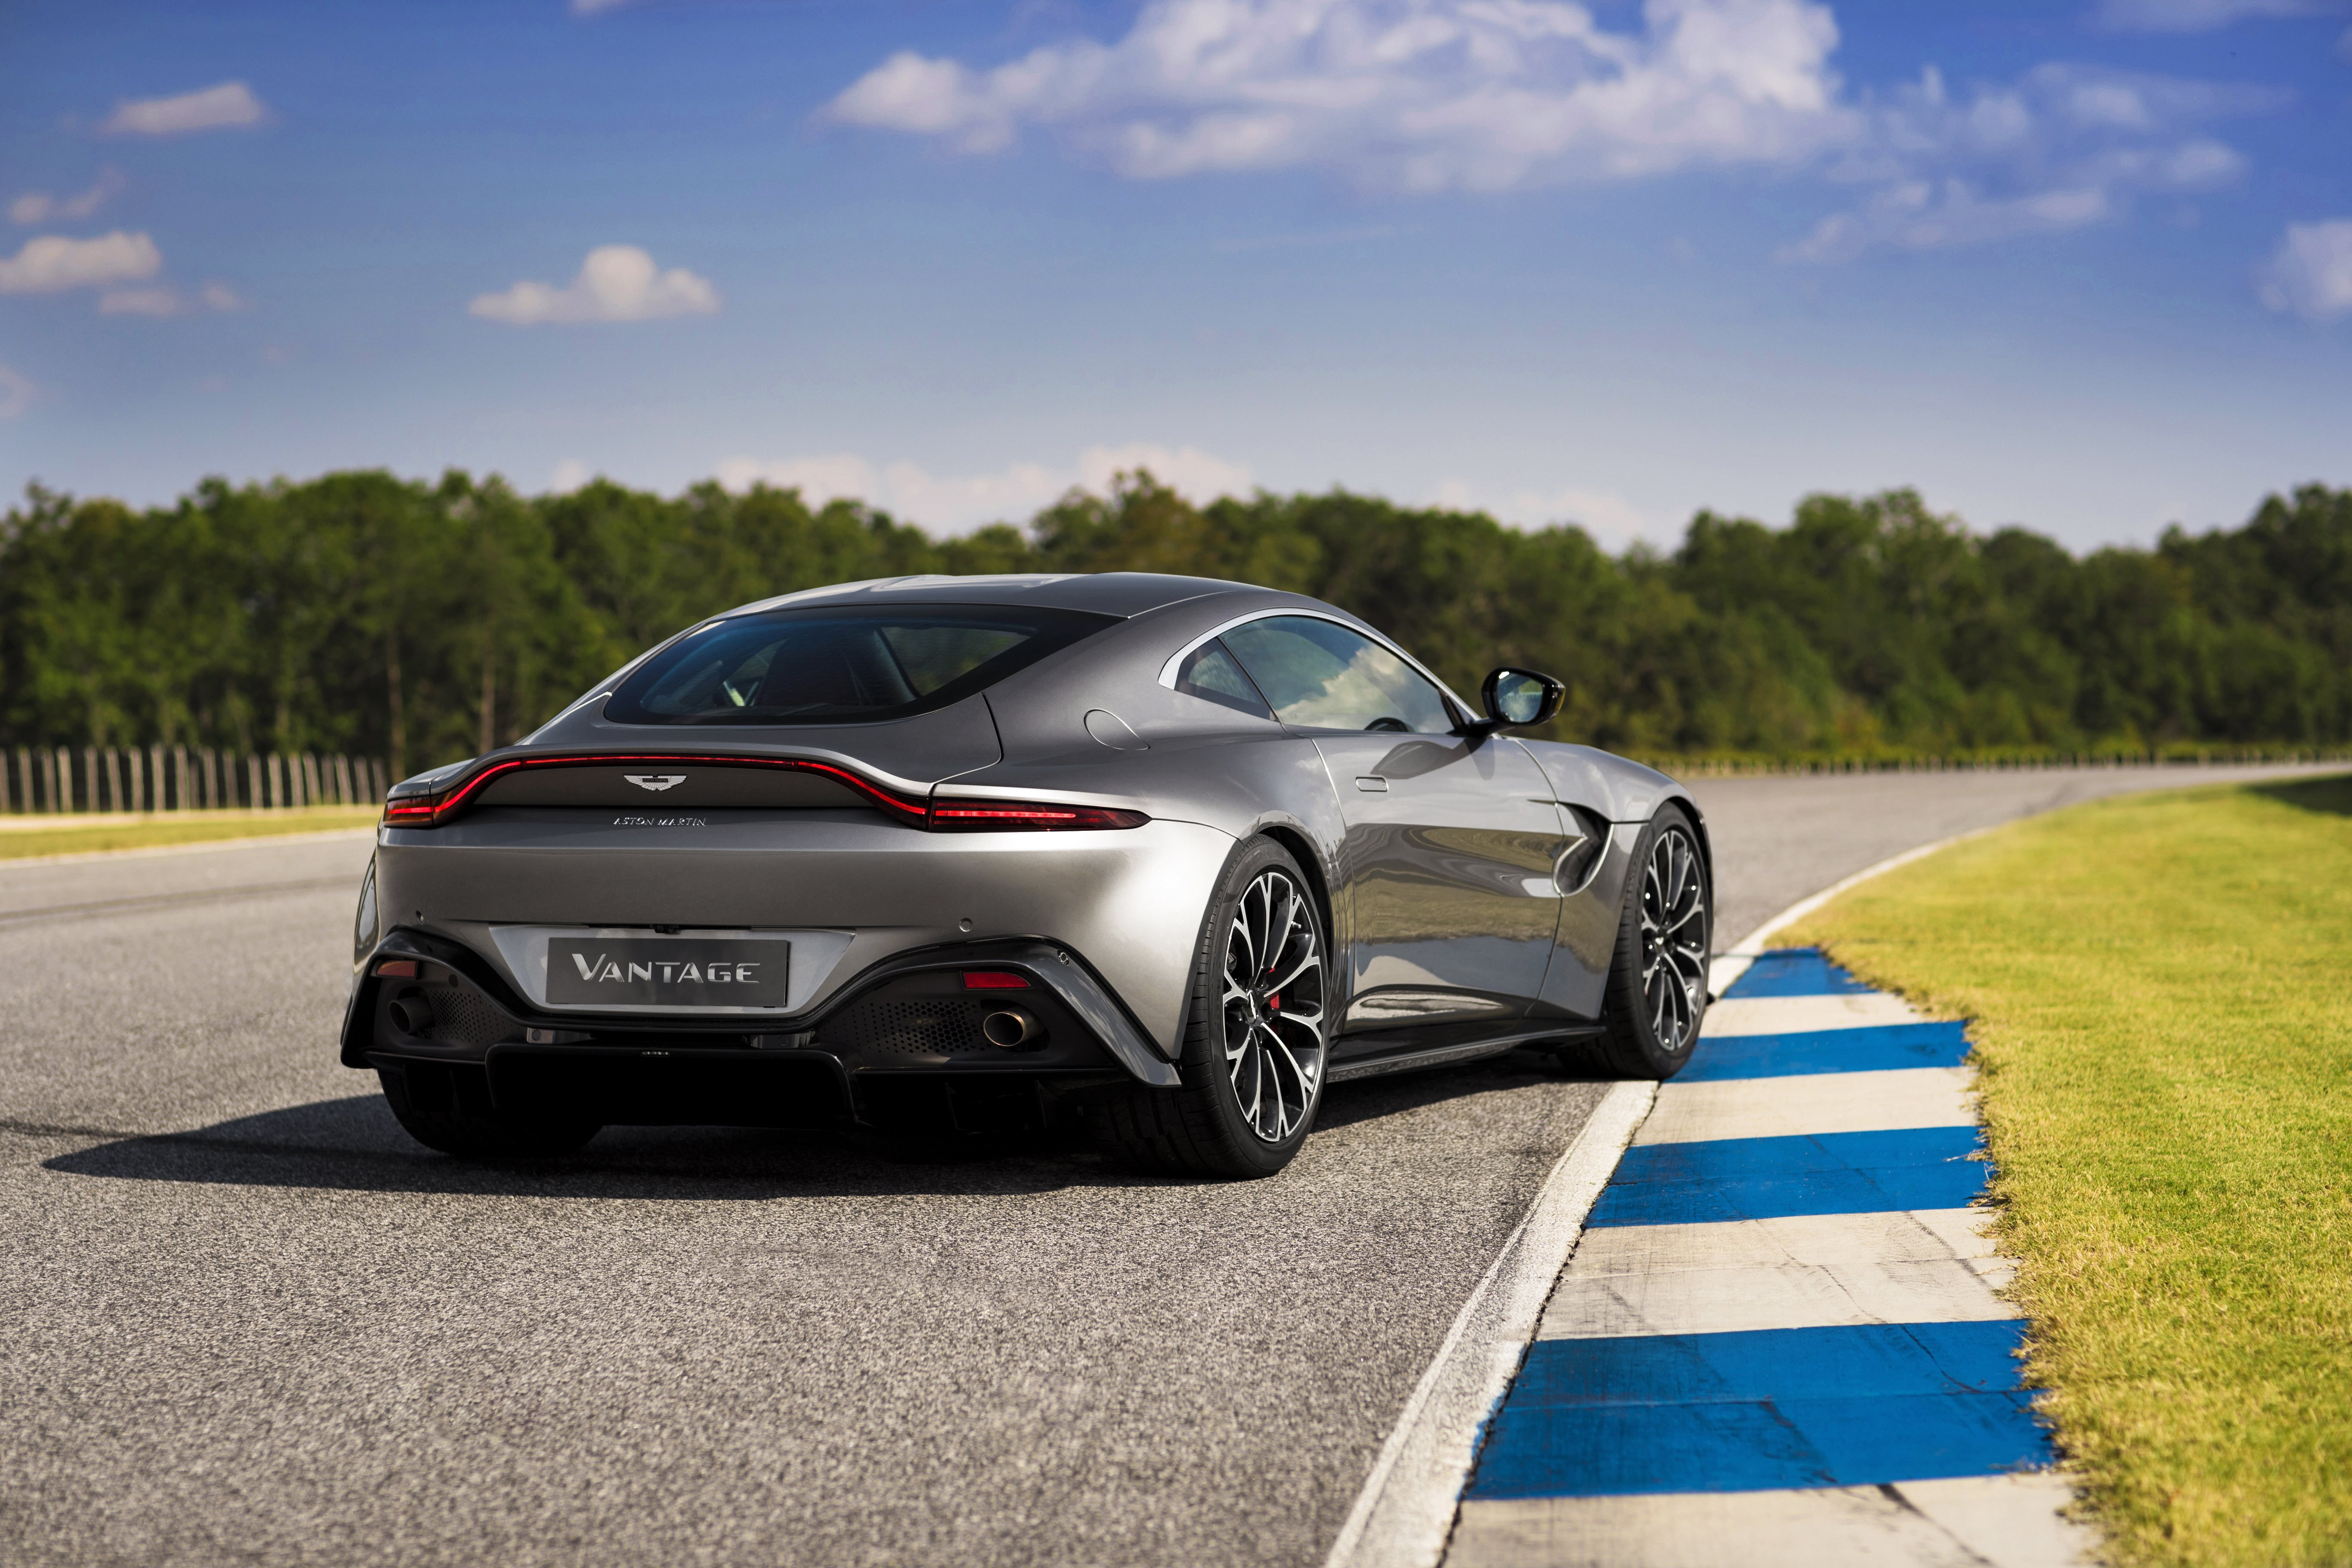 Aston Martin V Vantage Confirmed To Add Manual Transmission - Aston martin vantage v8